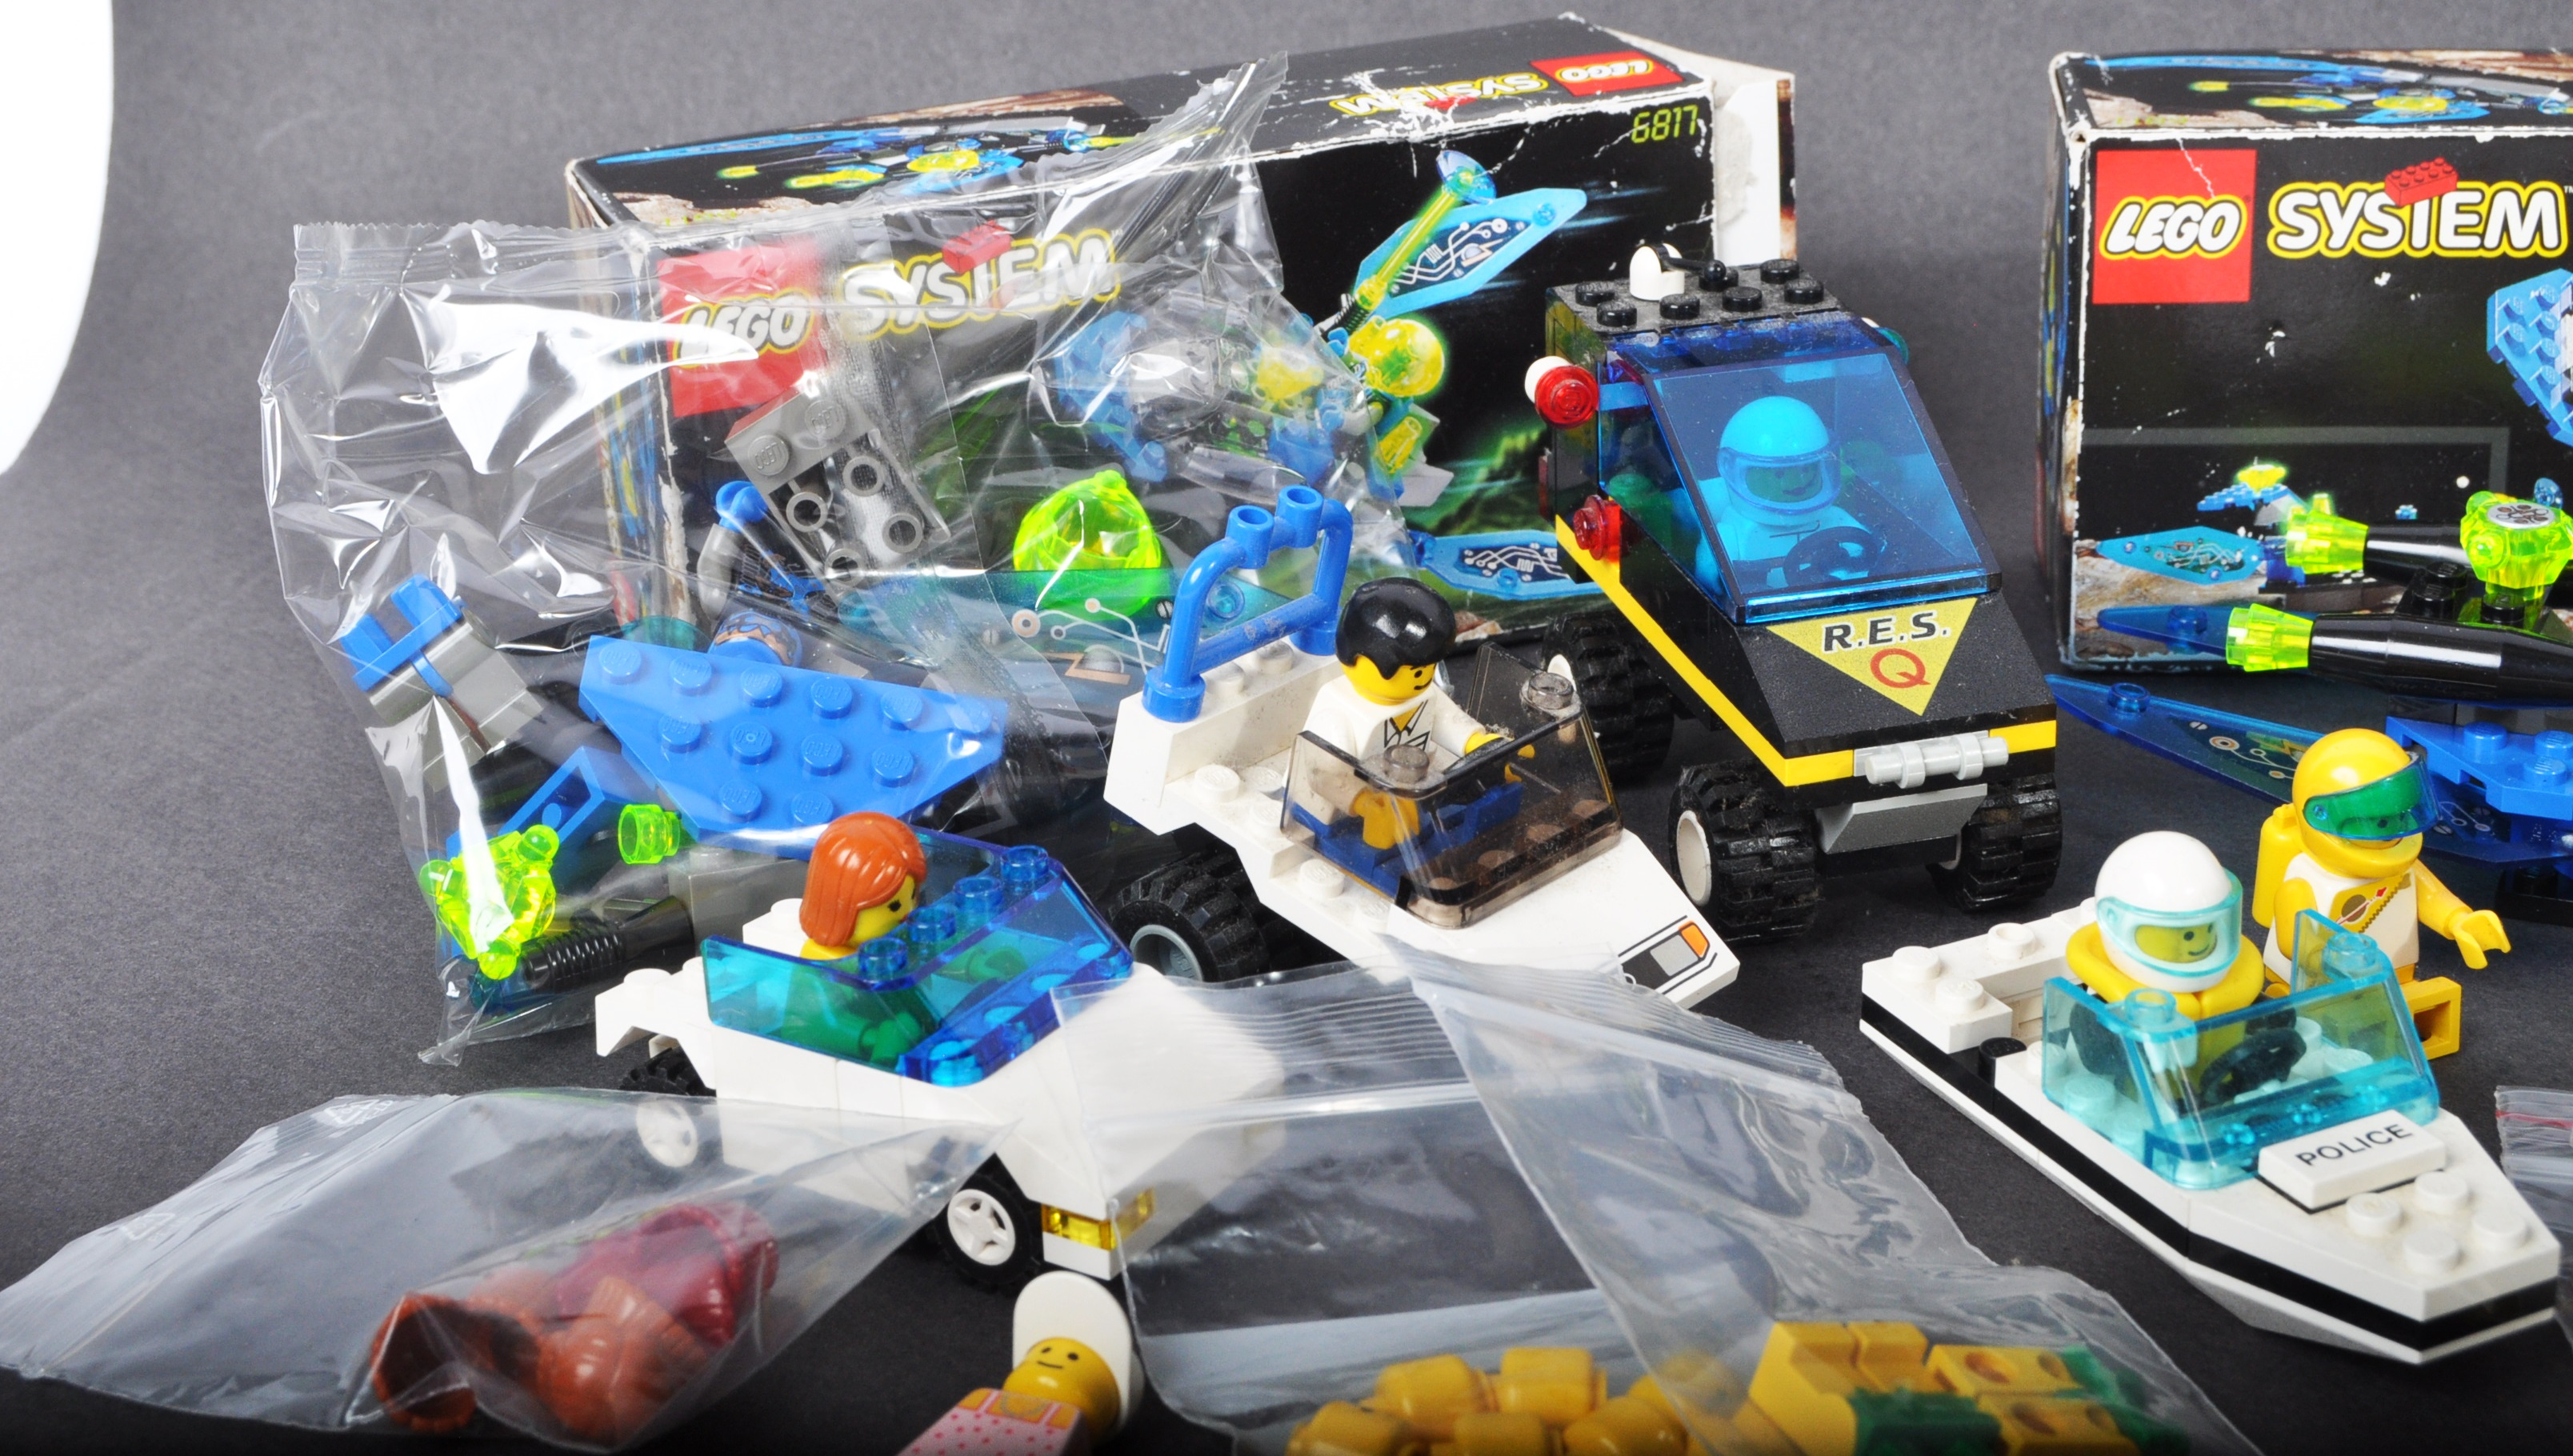 COLLECTION OF ASSORTED VINTAGE MINI LEGO SETS & MINIFIGURES - Image 2 of 10